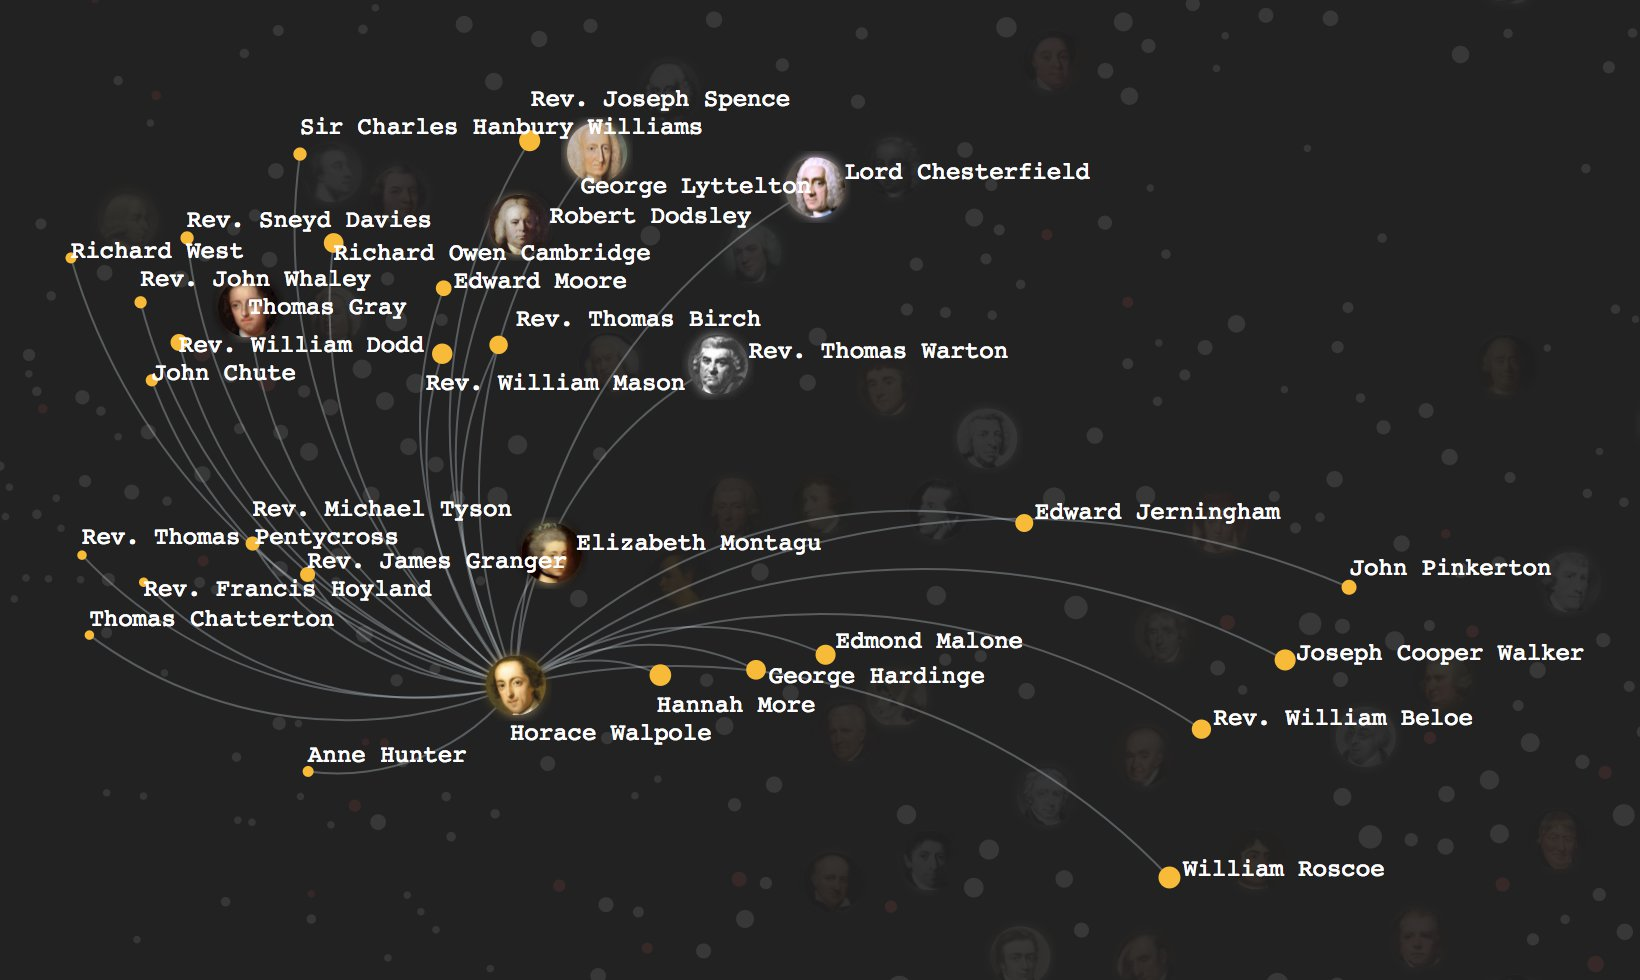 Network visualization of Horace Walpole's connections with other poets